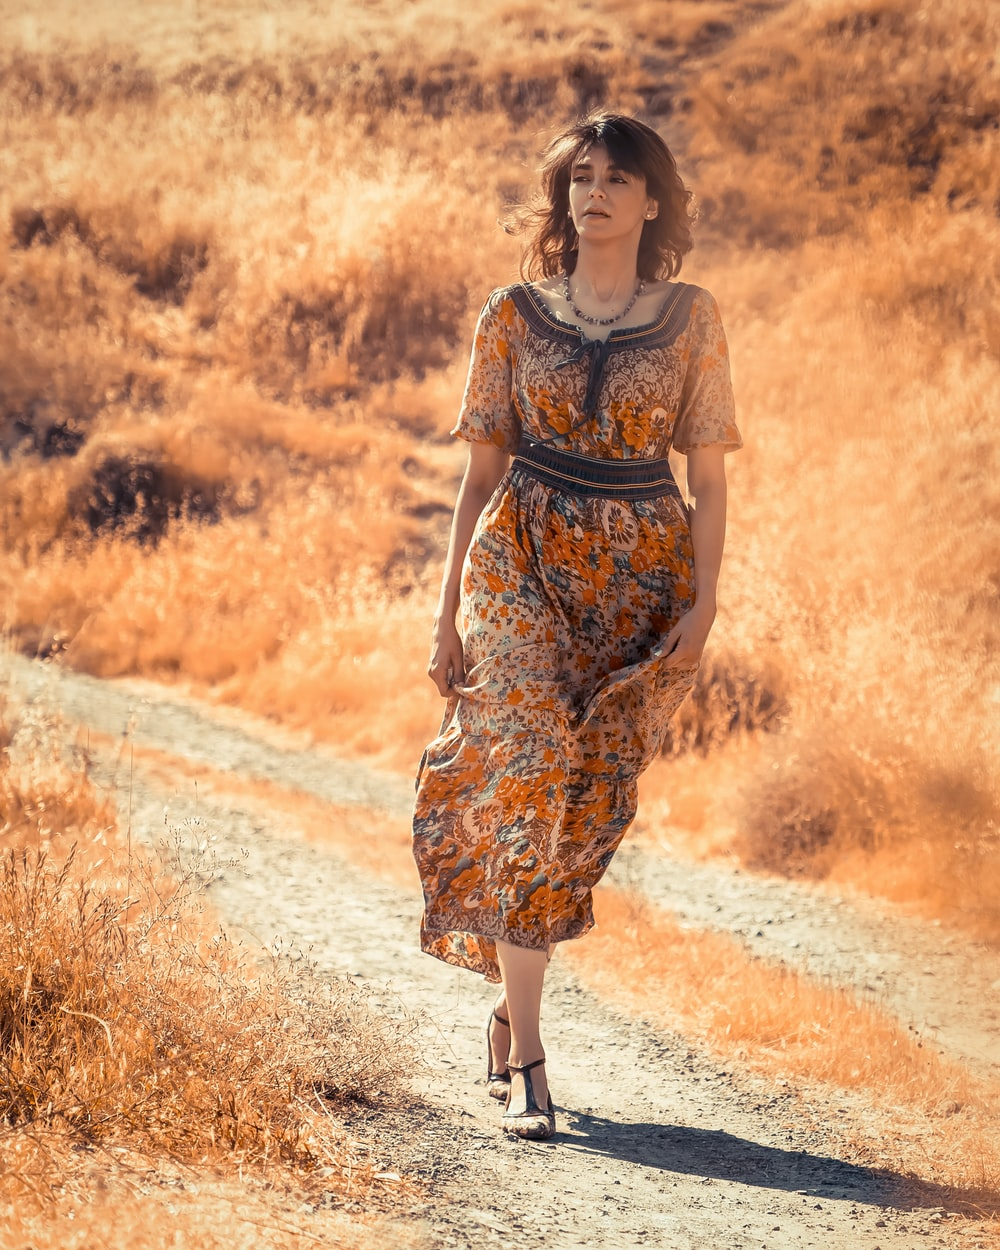 woman in brown and black floral dress standing on dirt road during daytime